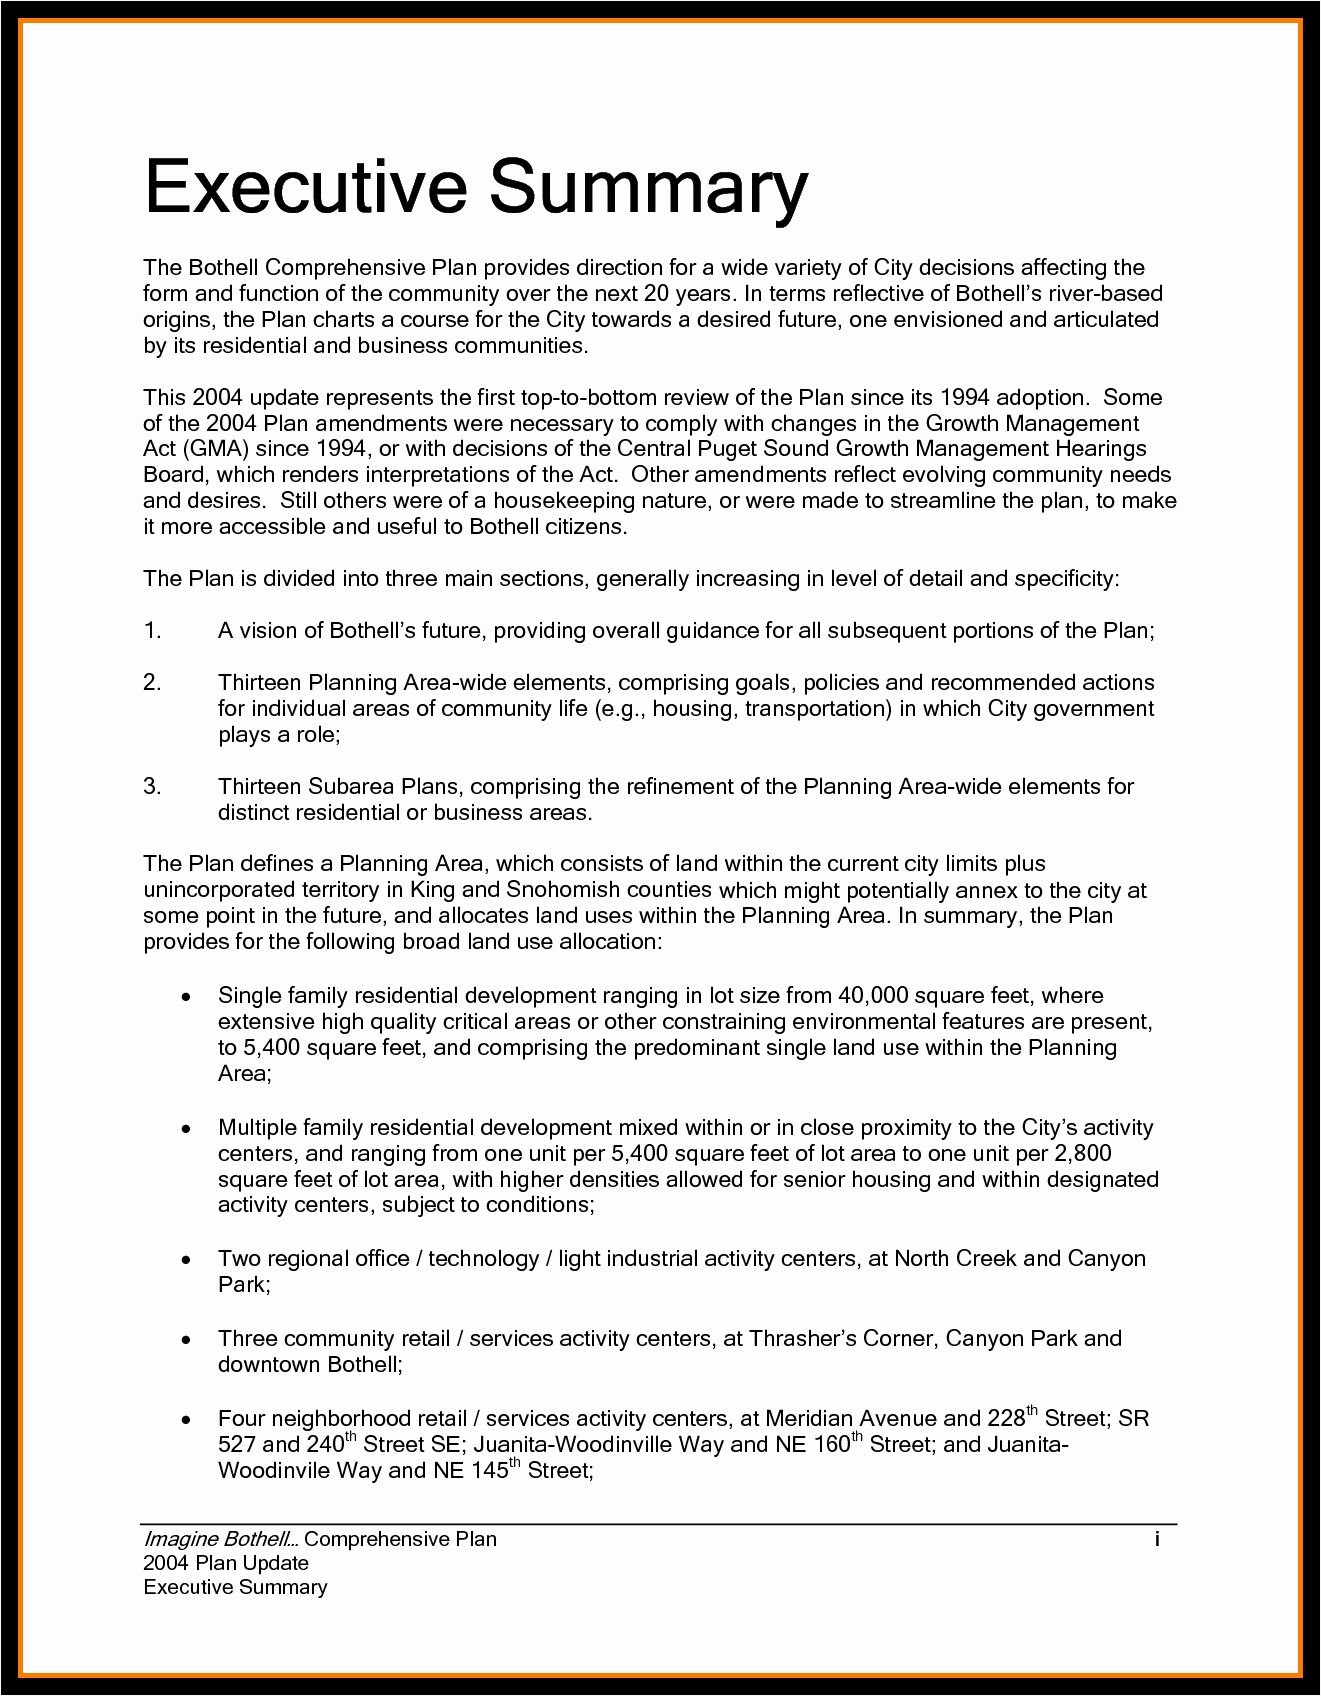 Executive Summary Financial Report Template Inspirational 9 Executive Summary Sample Financial Statement form